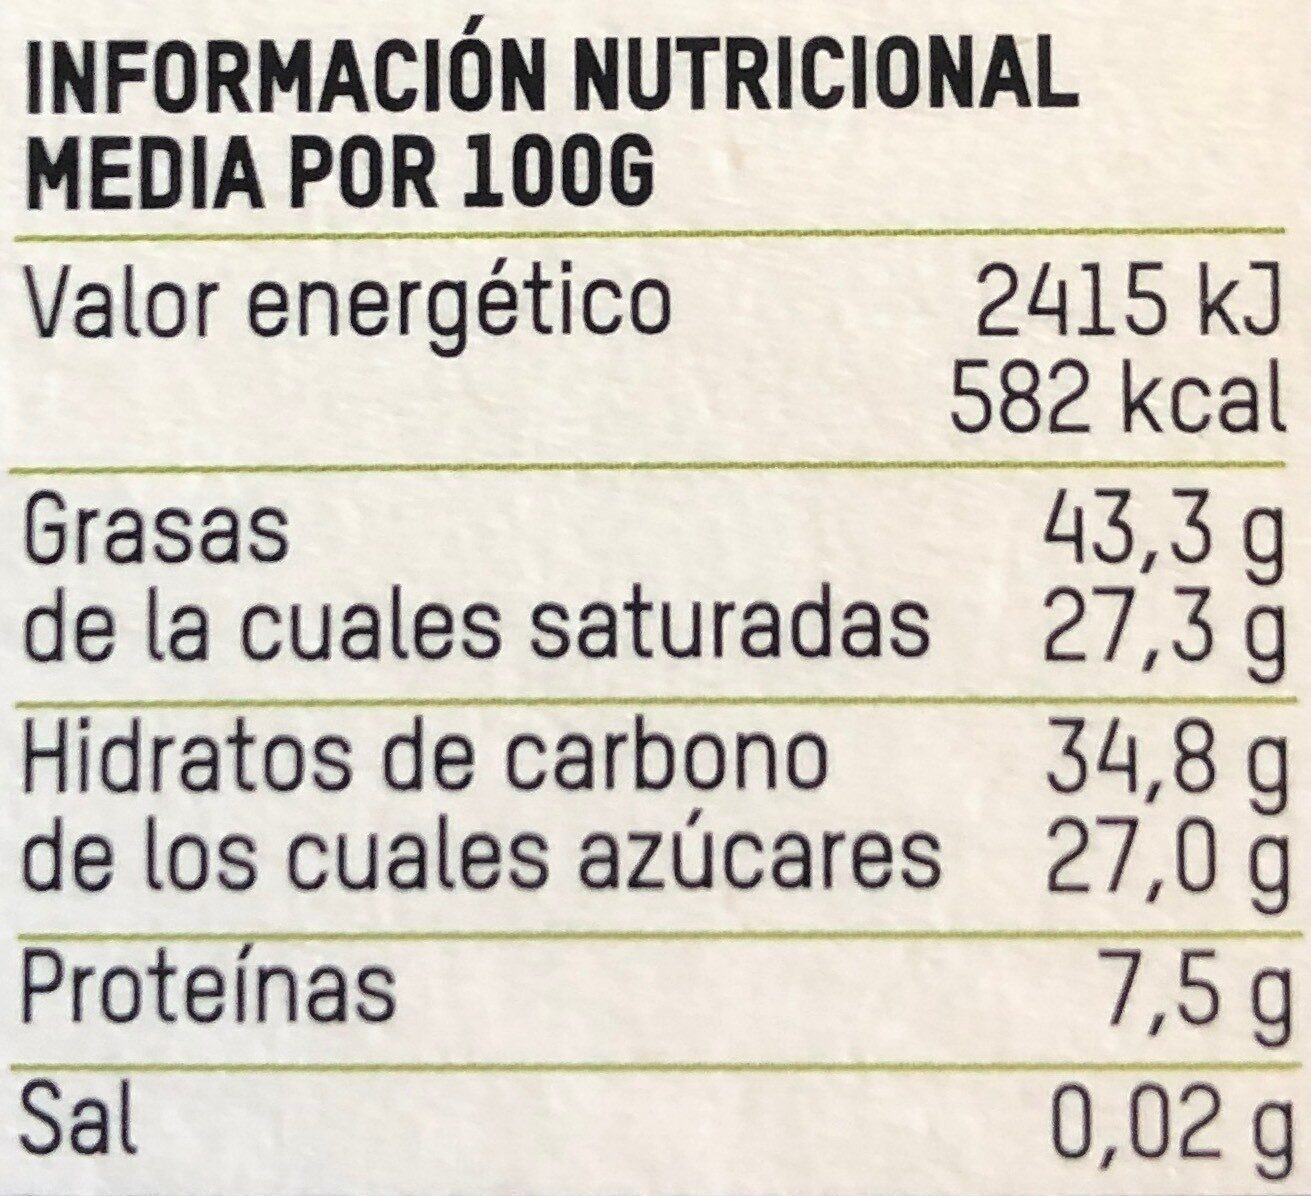 Tierra madre chocolate ecológico negro cacao - Nutrition facts